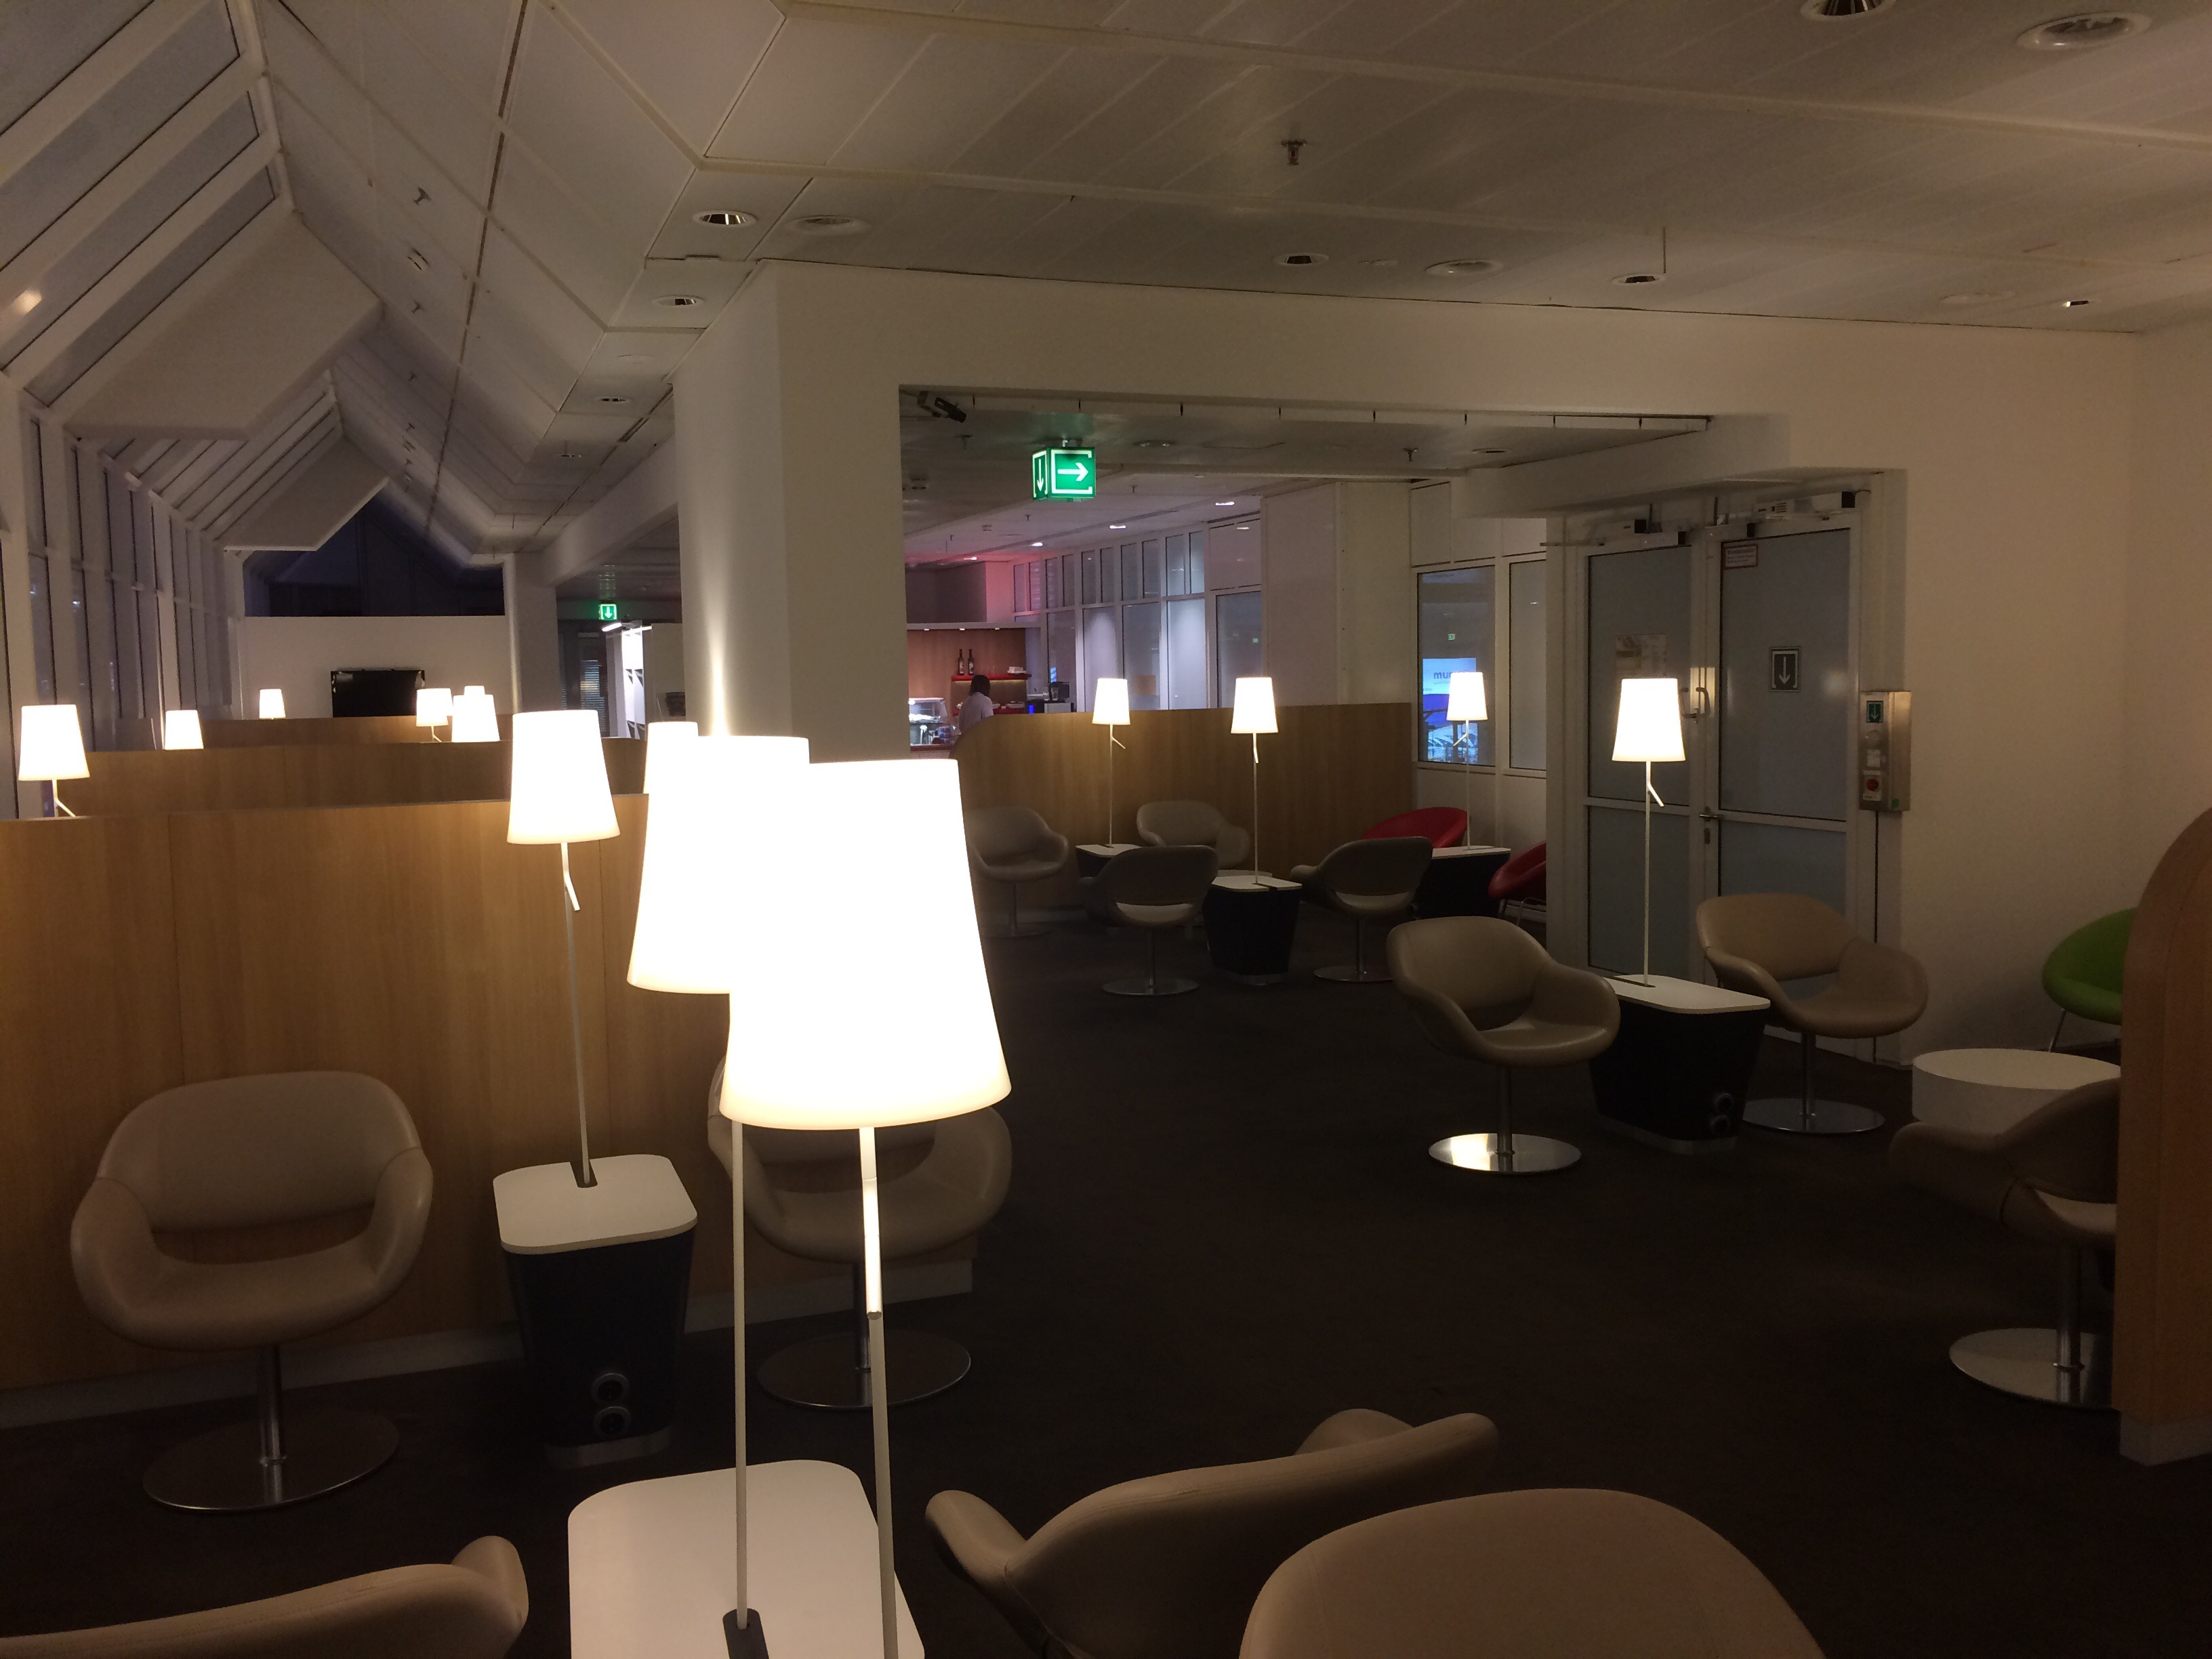 KLM's lounge at Munich Airport. It's quiet and the coffee was very good.